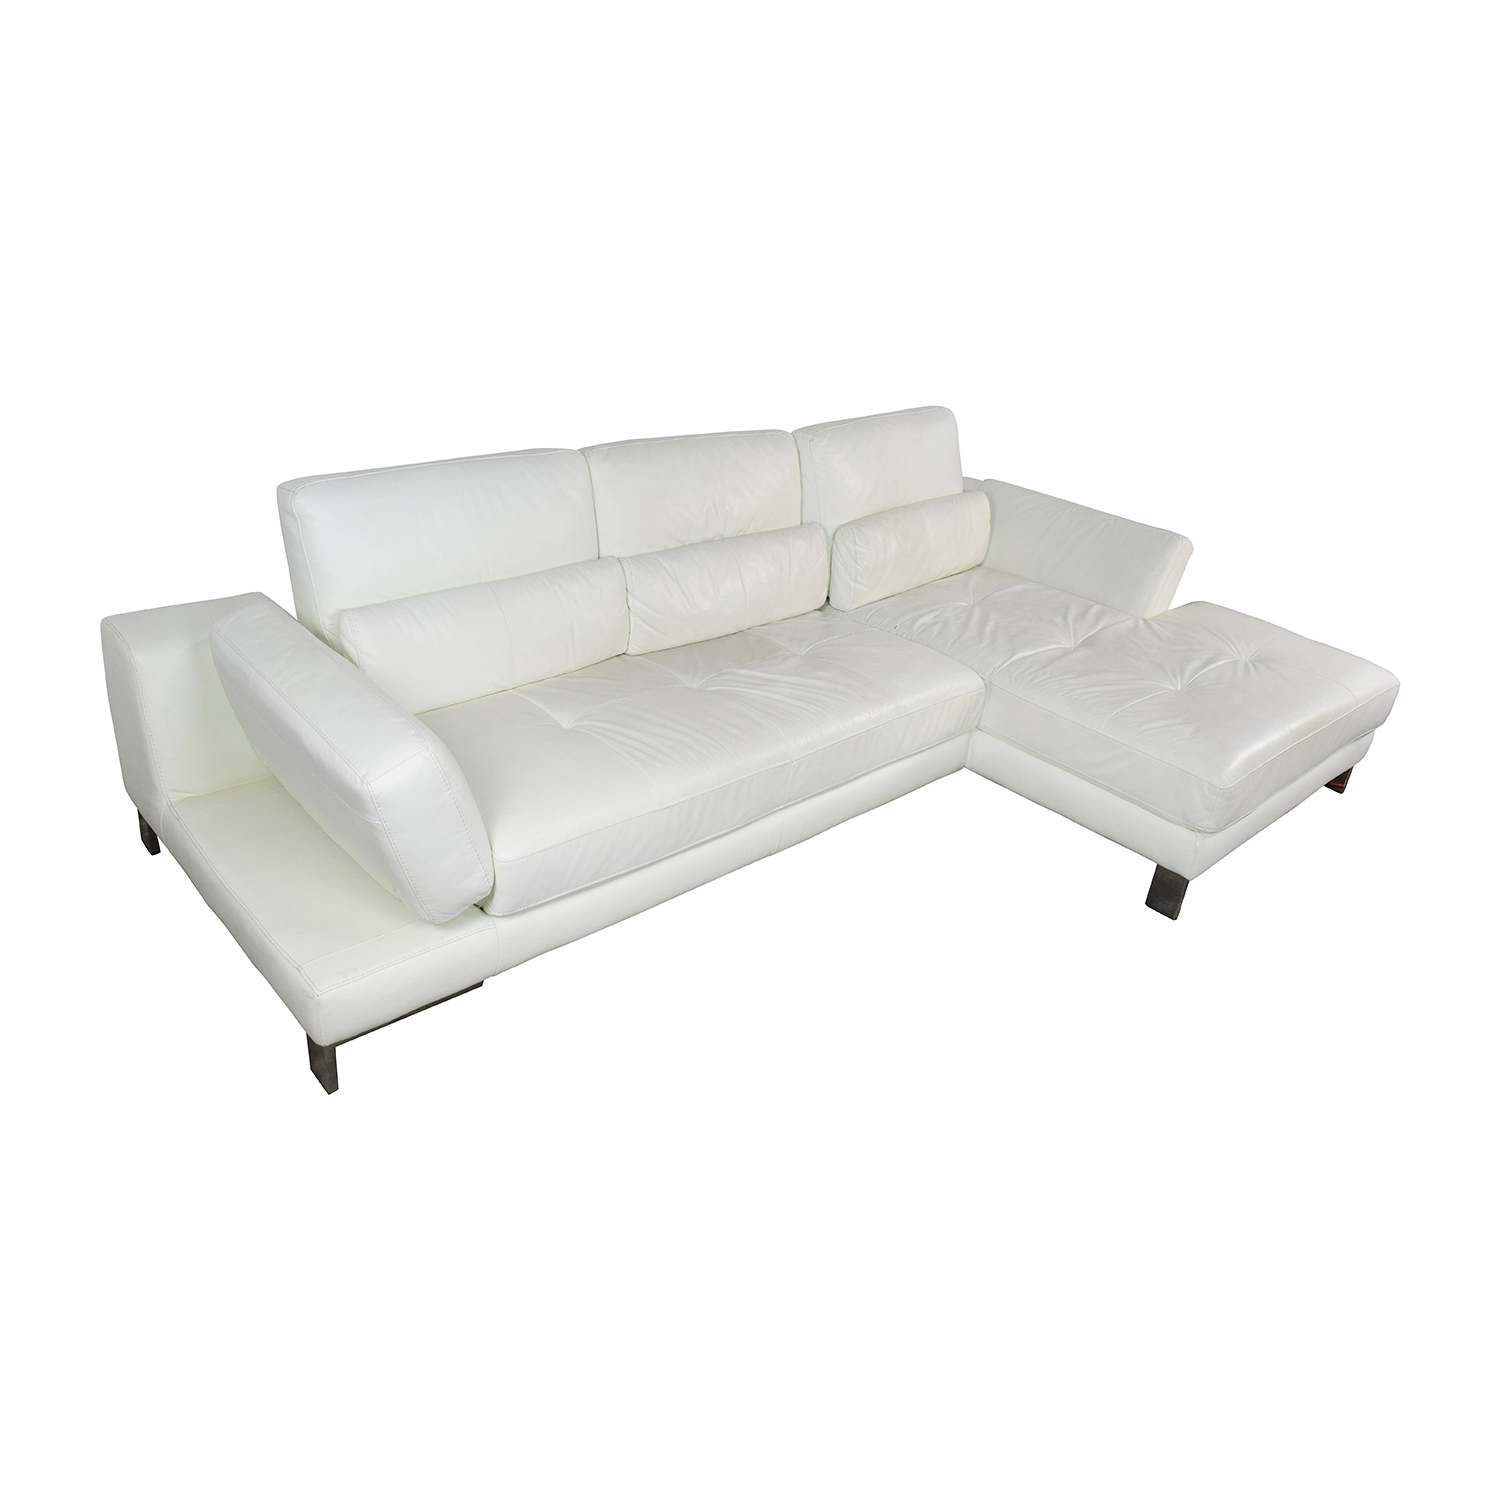 72% Off   Mobilia Canada Mobilia Canada Funktion White Leather Regarding Mobilia Sectional Sofas (Photo 2 of 10)